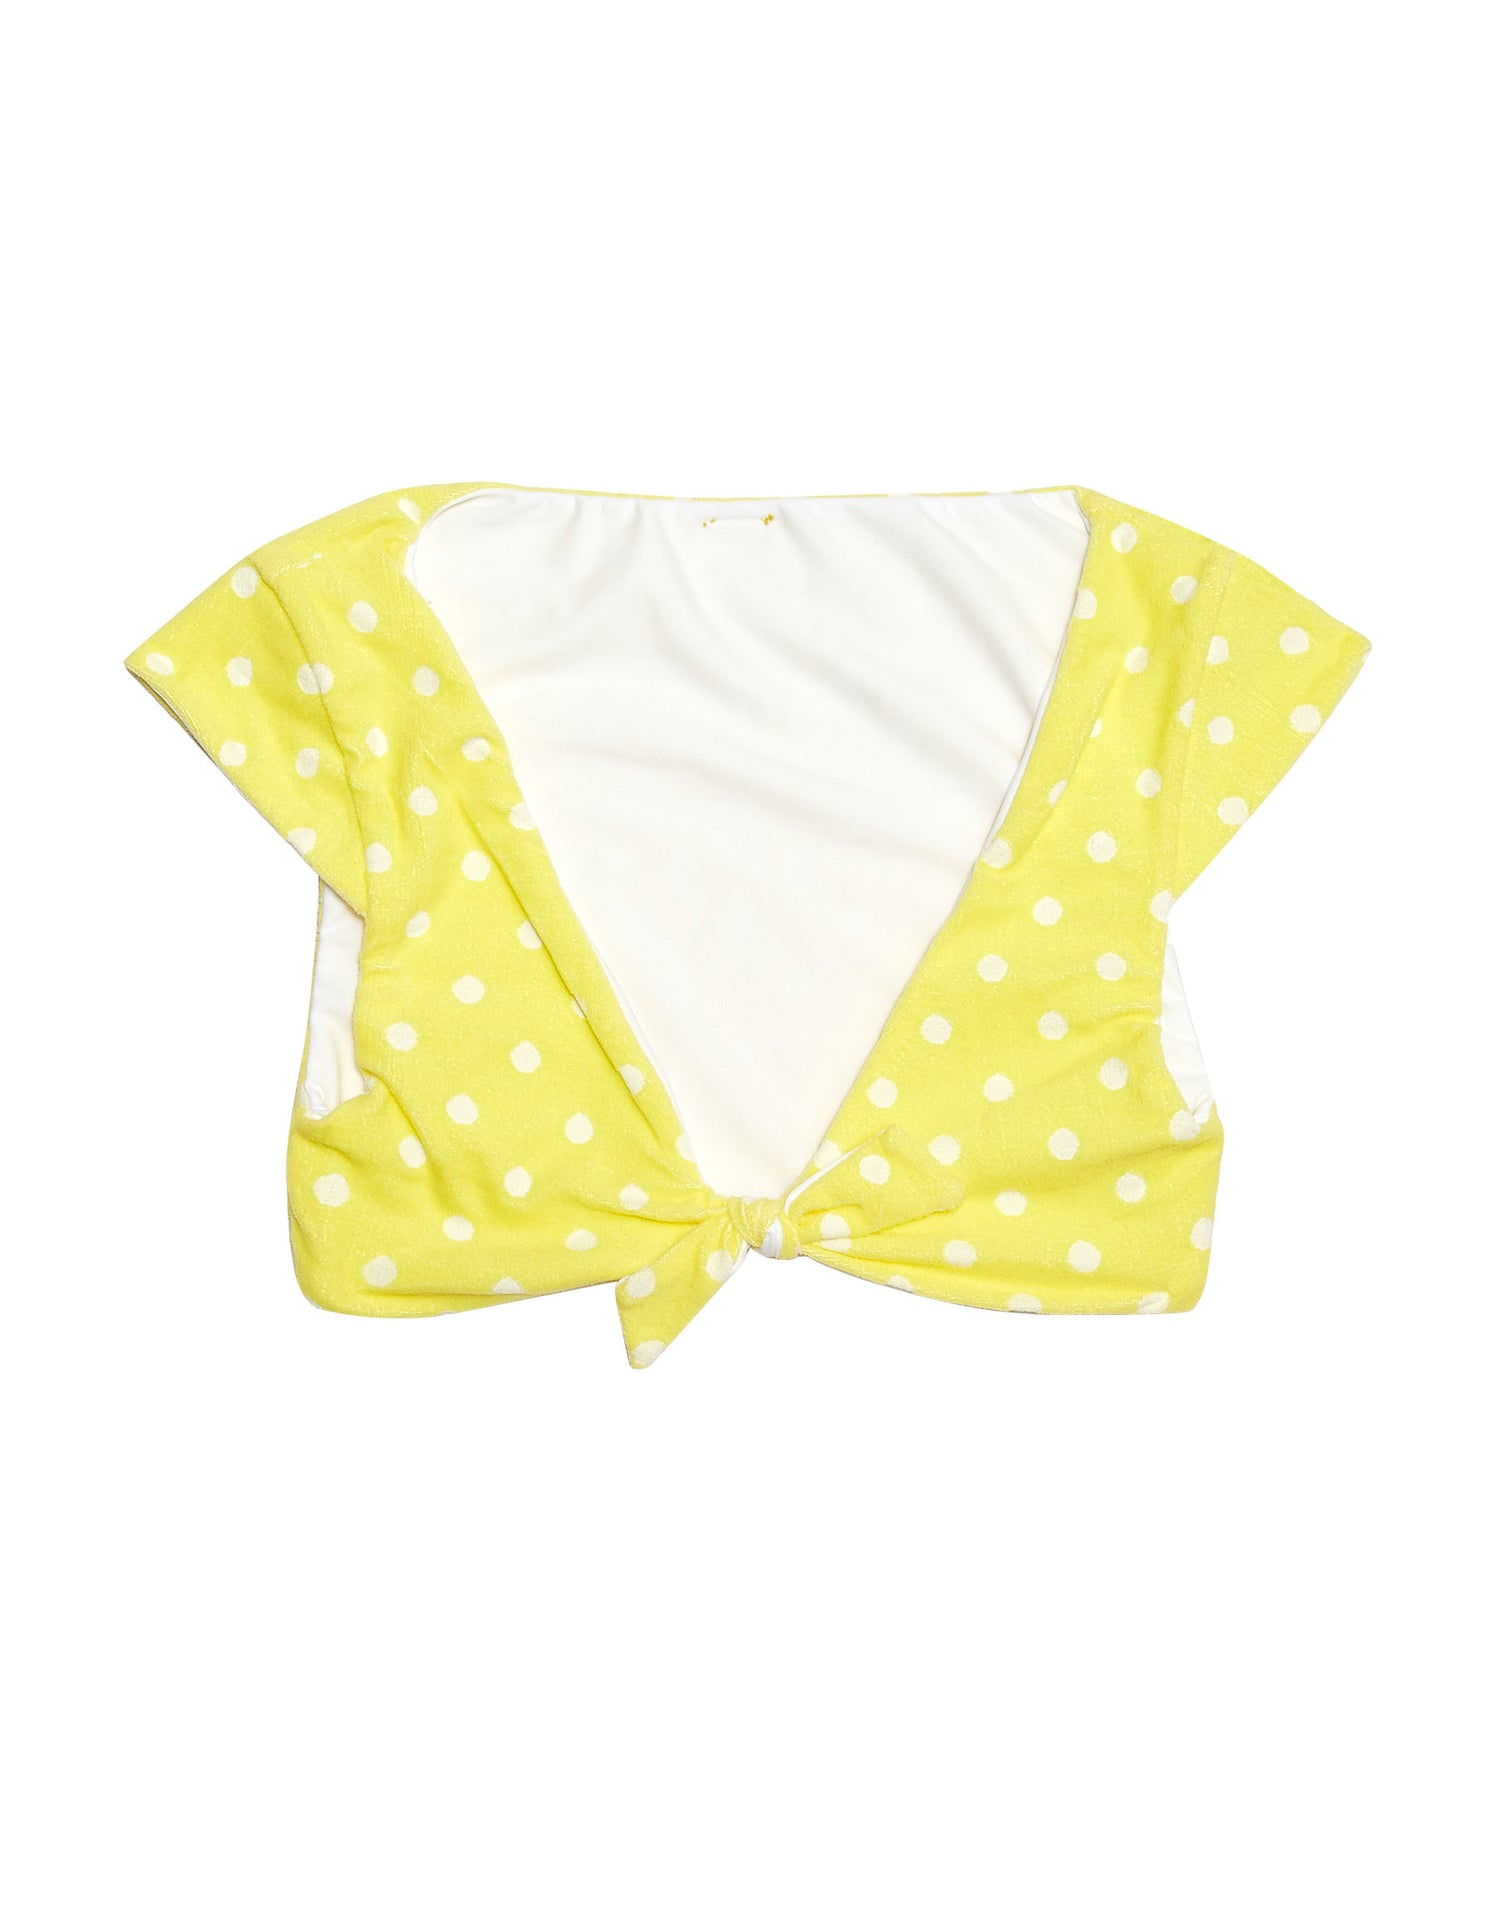 Margeaux Crop Bikini Top in Lemon Yellow Polka Dot - product view